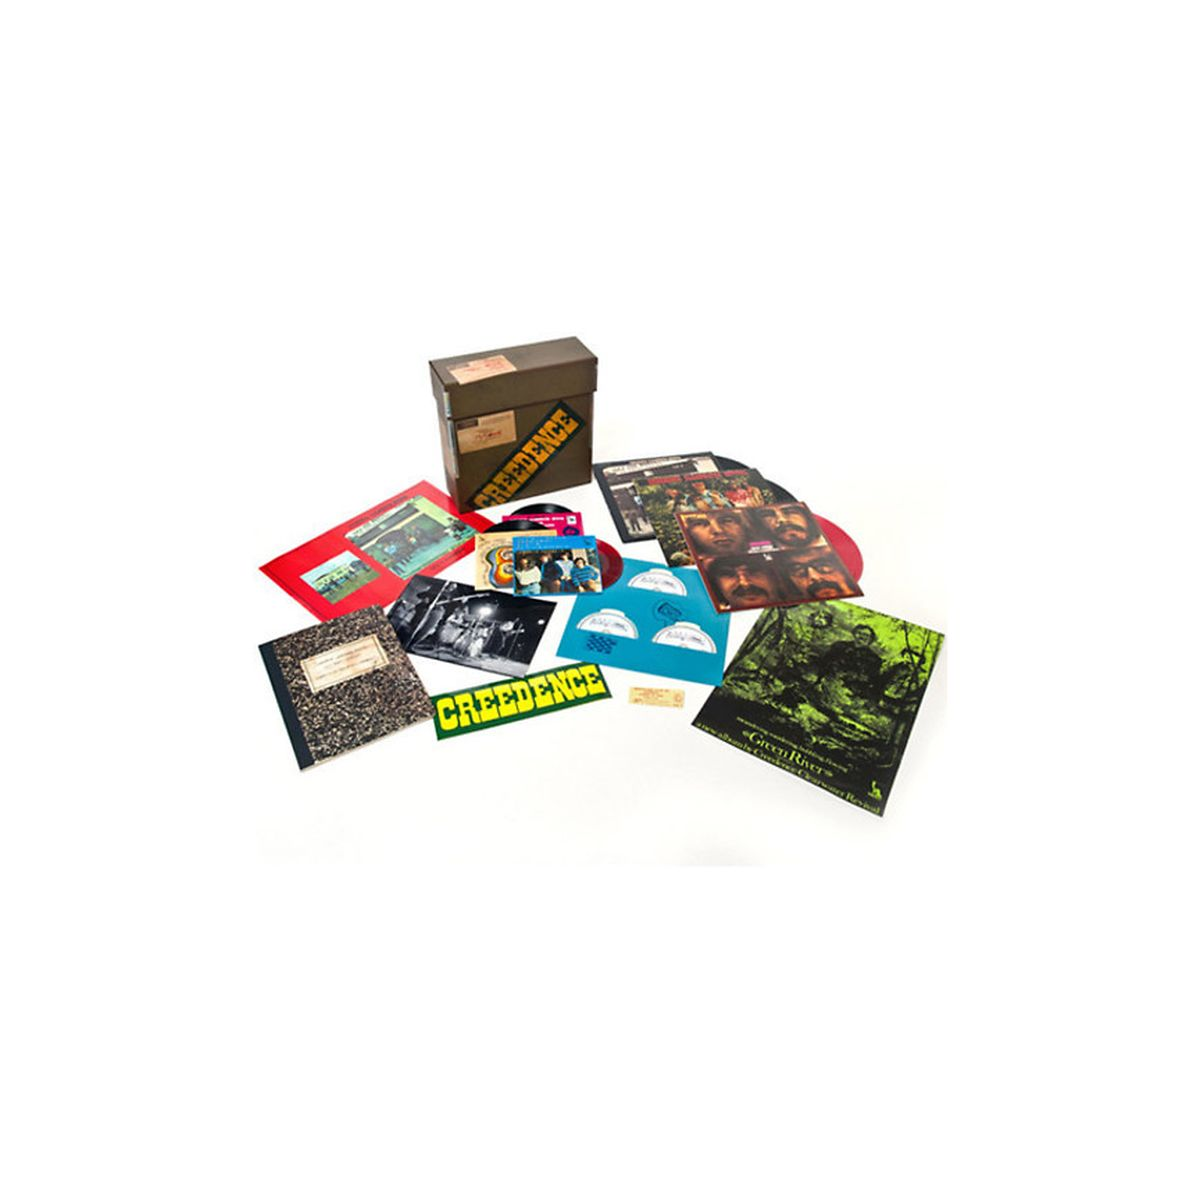 Creedence Clearwater Revival - 1969 (3 LP/ 3 CD/ 3 -7) Box Set